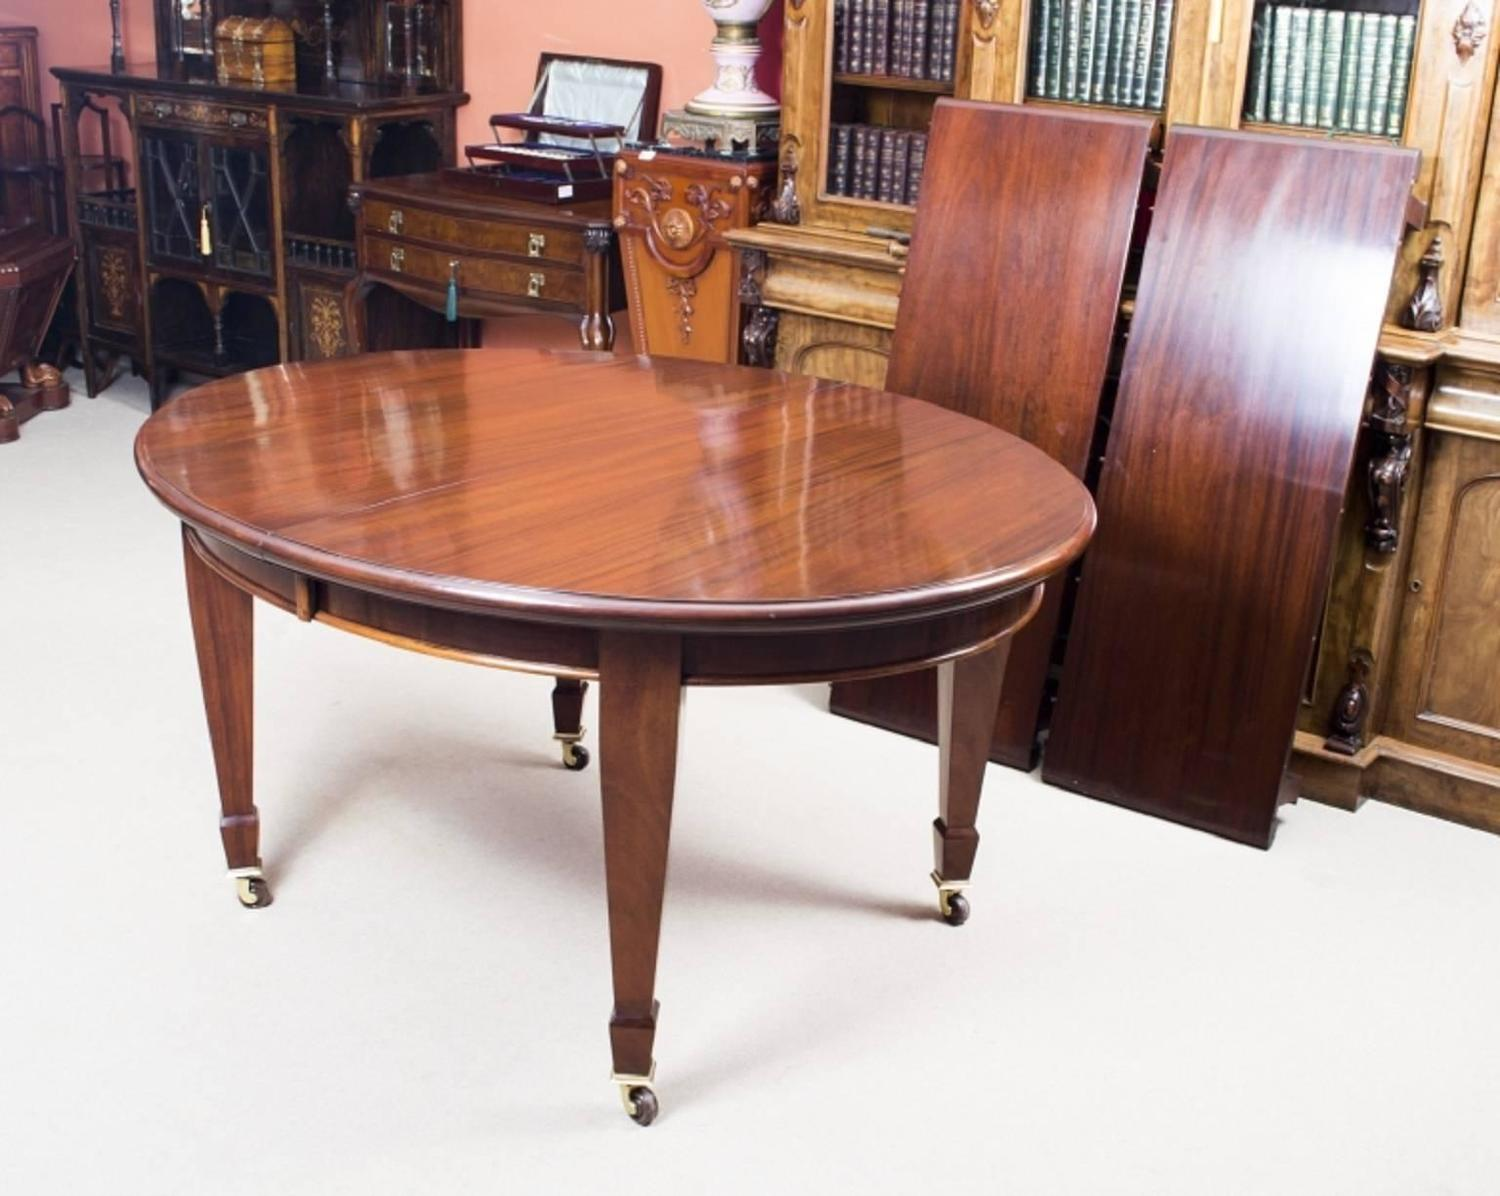 Antique edwardian mahogany dining table circa 1900 at 1stdibs dzzzfo